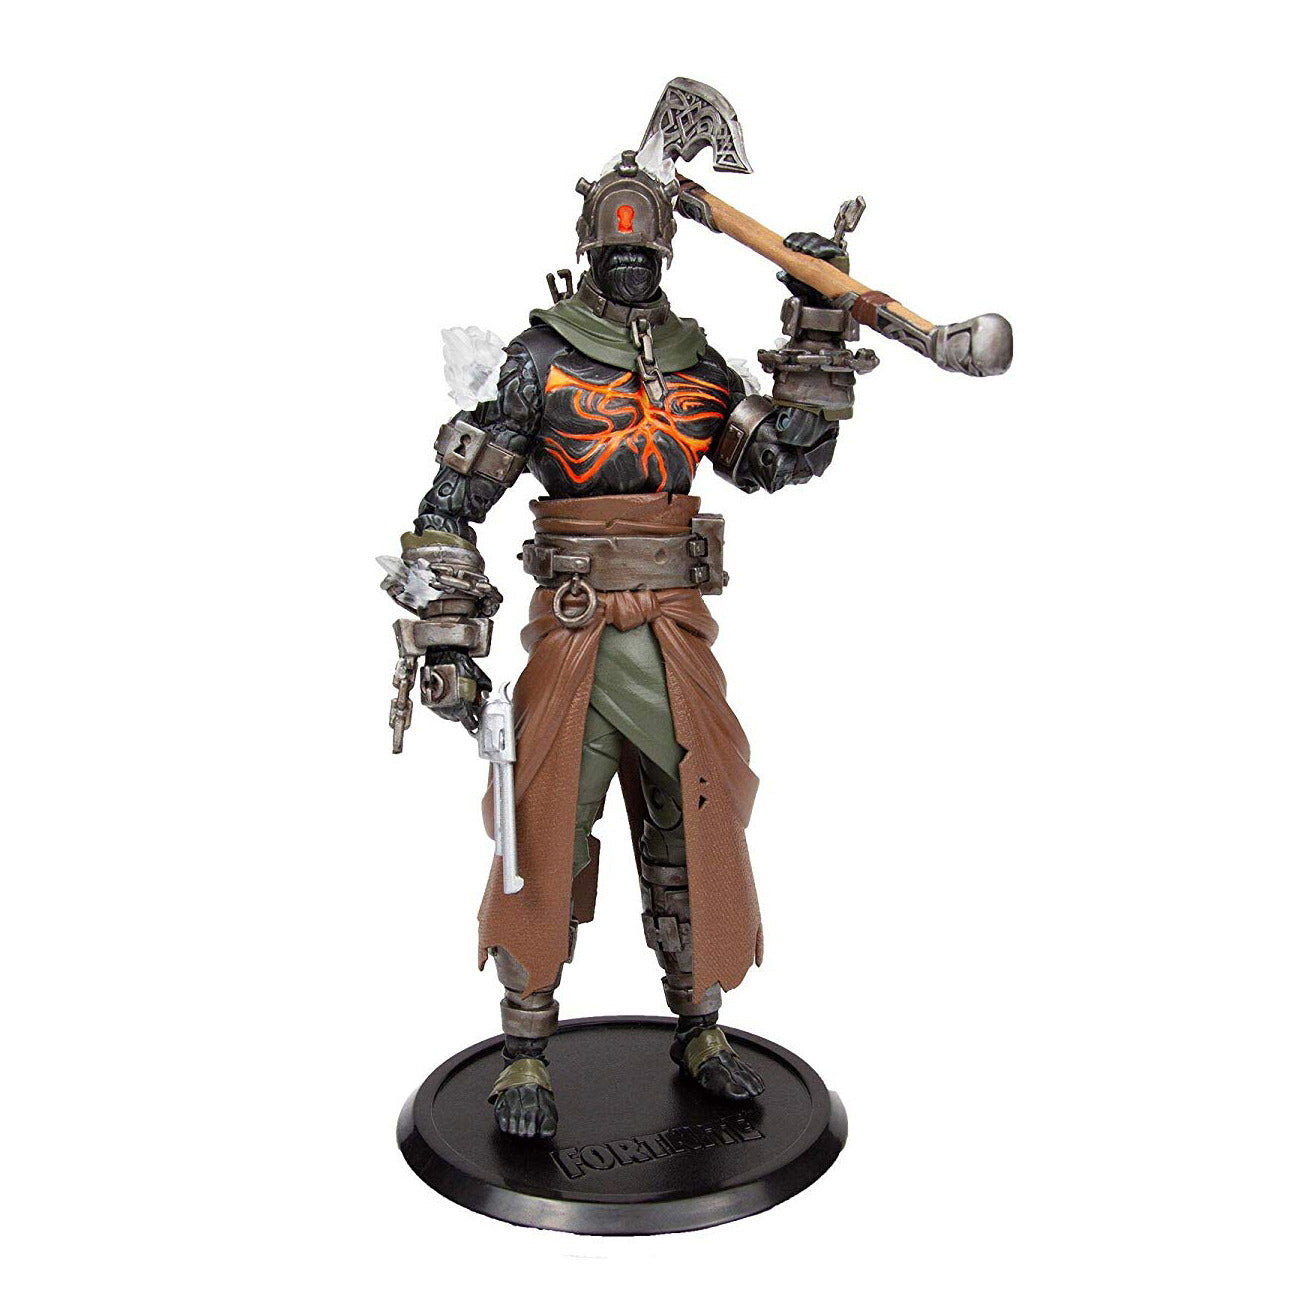 Fortnite The Prisoner 7 inch Premium Action Figure